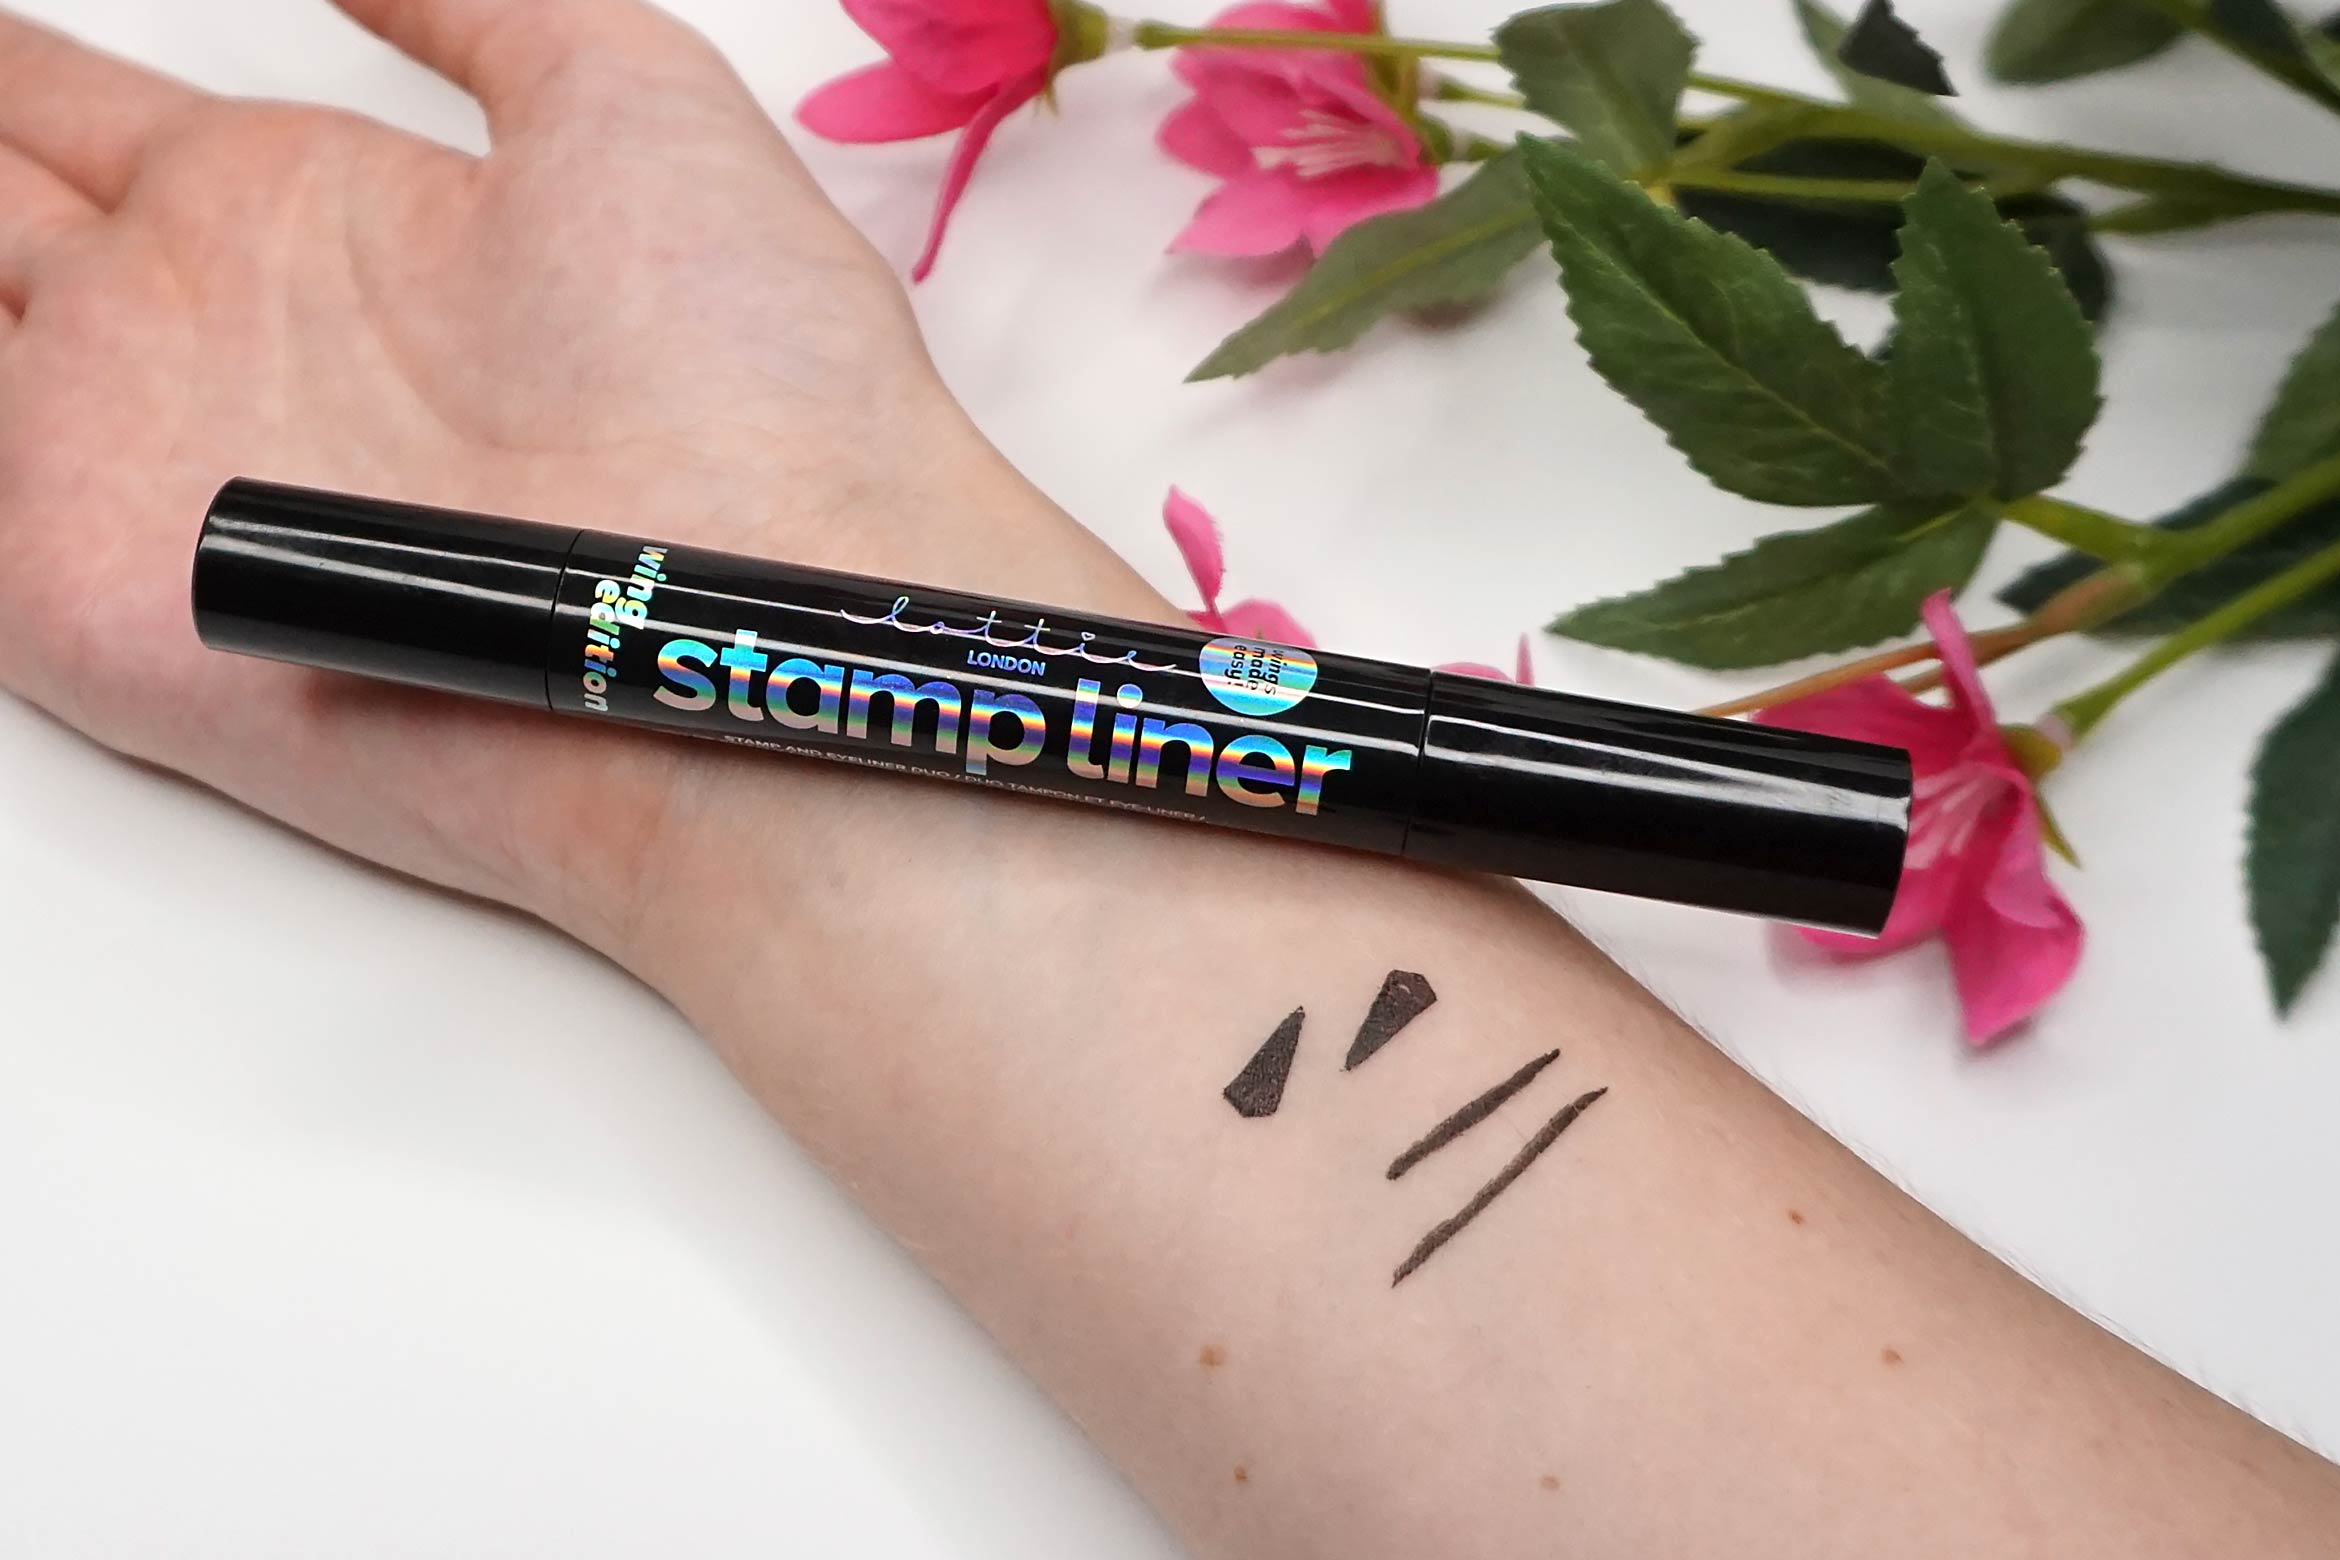 lottie-london-stamp-liner-wing-edition-swatch-review